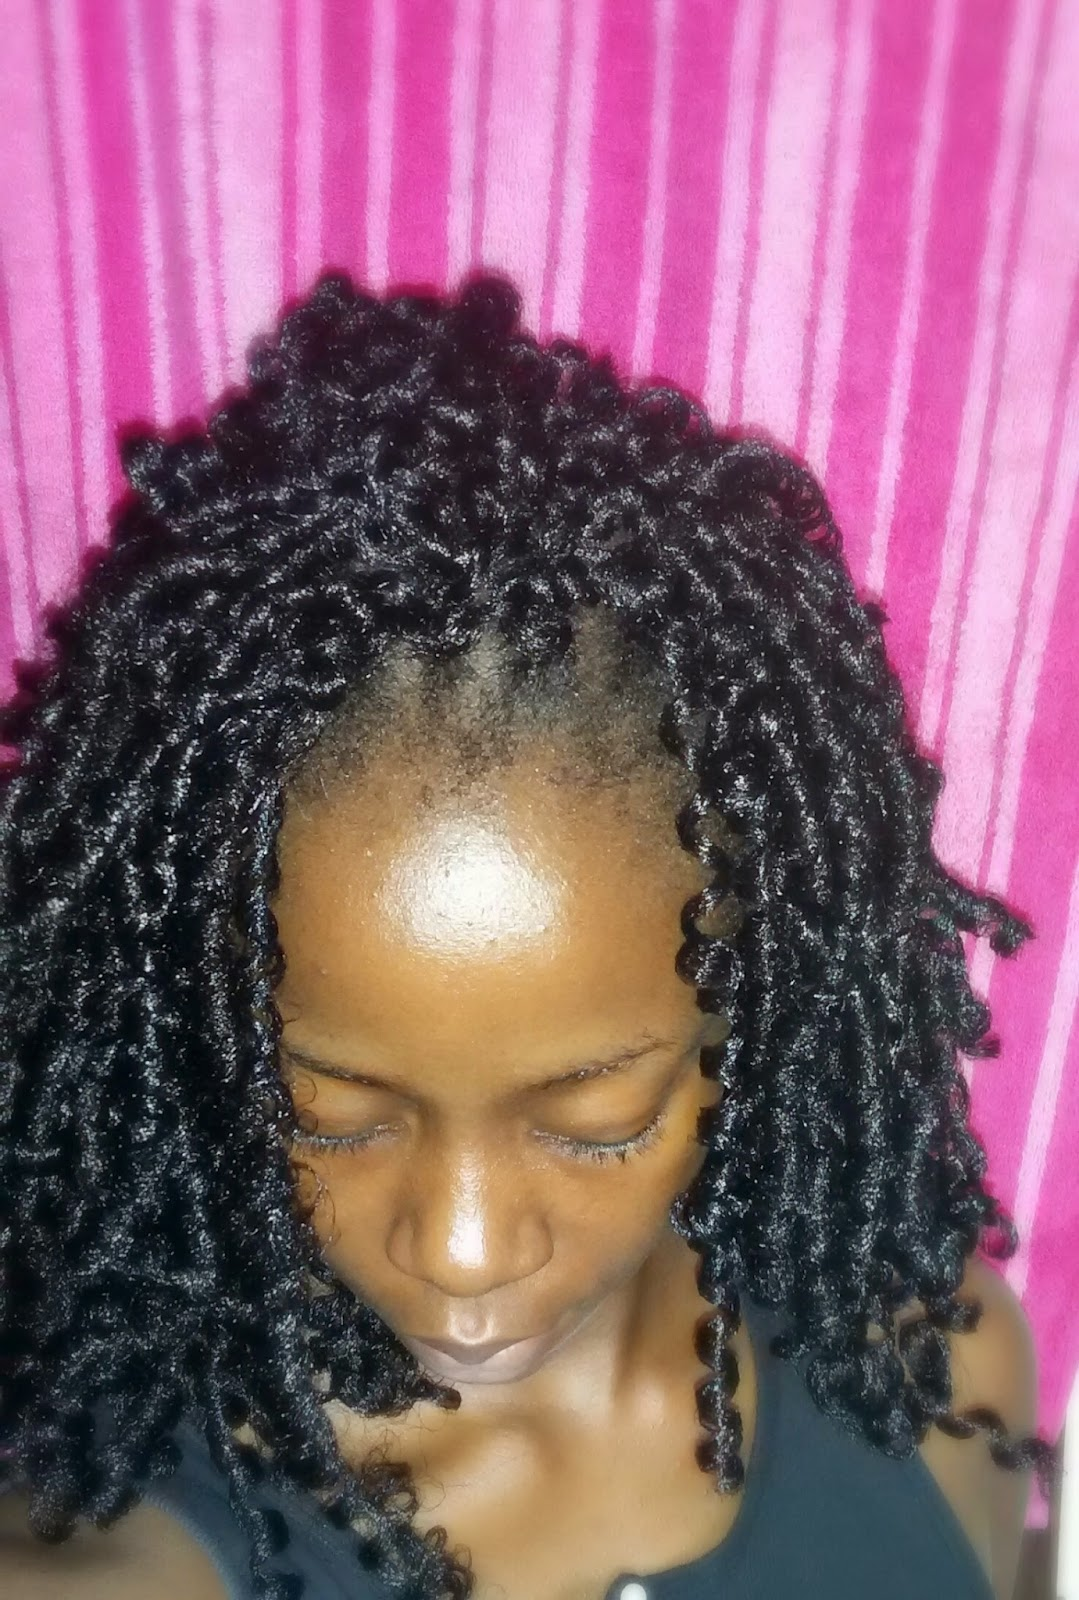 Crochet Hair At Night : Momas Healthy Hair Journey: Protective Style - Crochet Braids